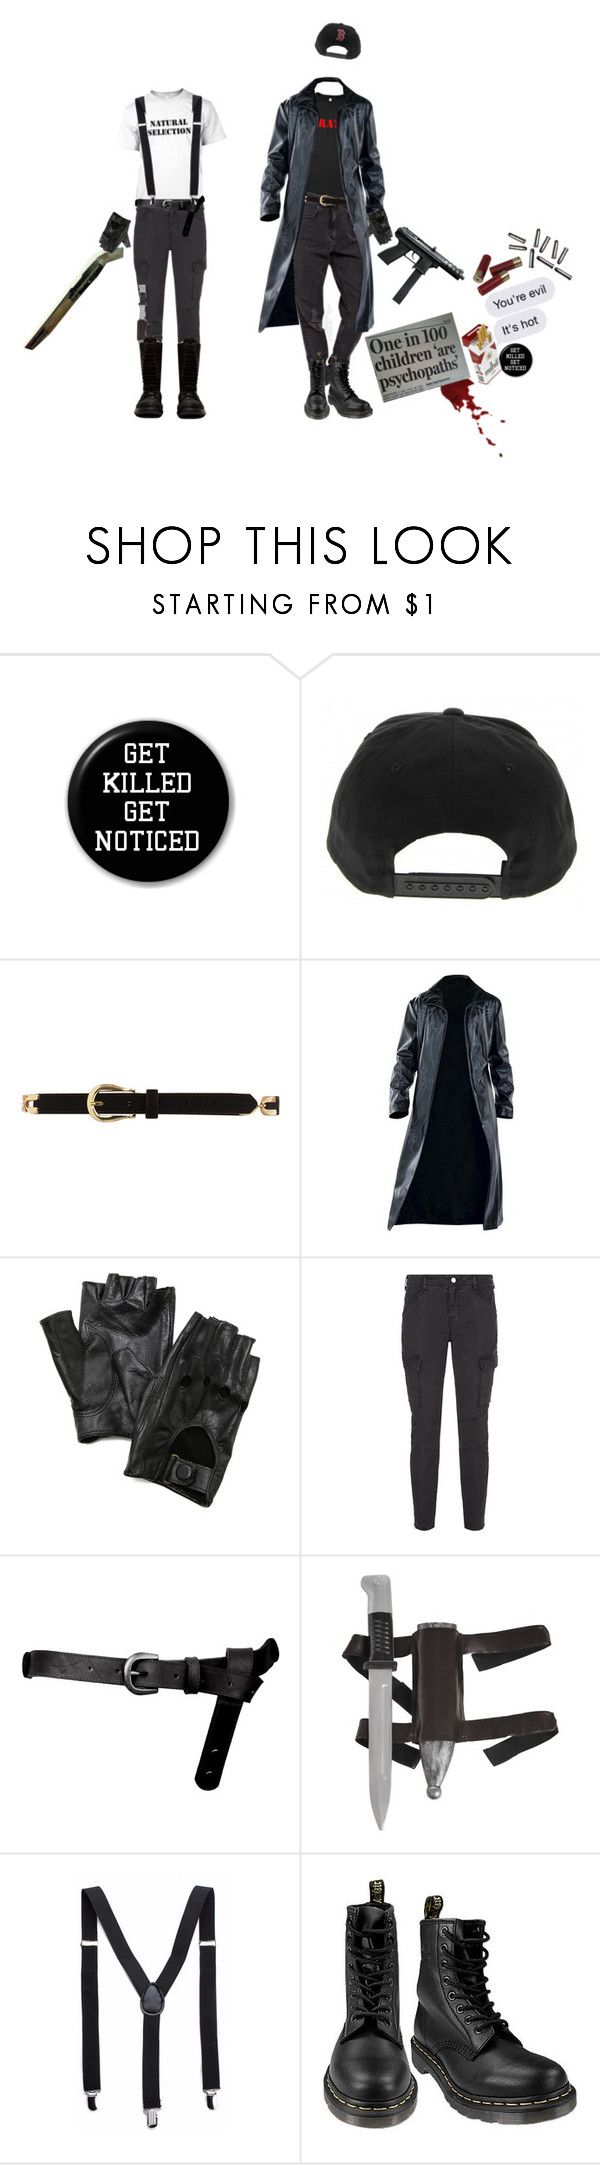 """REB&voDKa"" by morbid-octobur ❤ liked on Polyvore featuring Dorothy Perkins, Carolina Amato, J Brand, ASOS, Dr. Martens, Rick Owens, men's fashion and menswear"